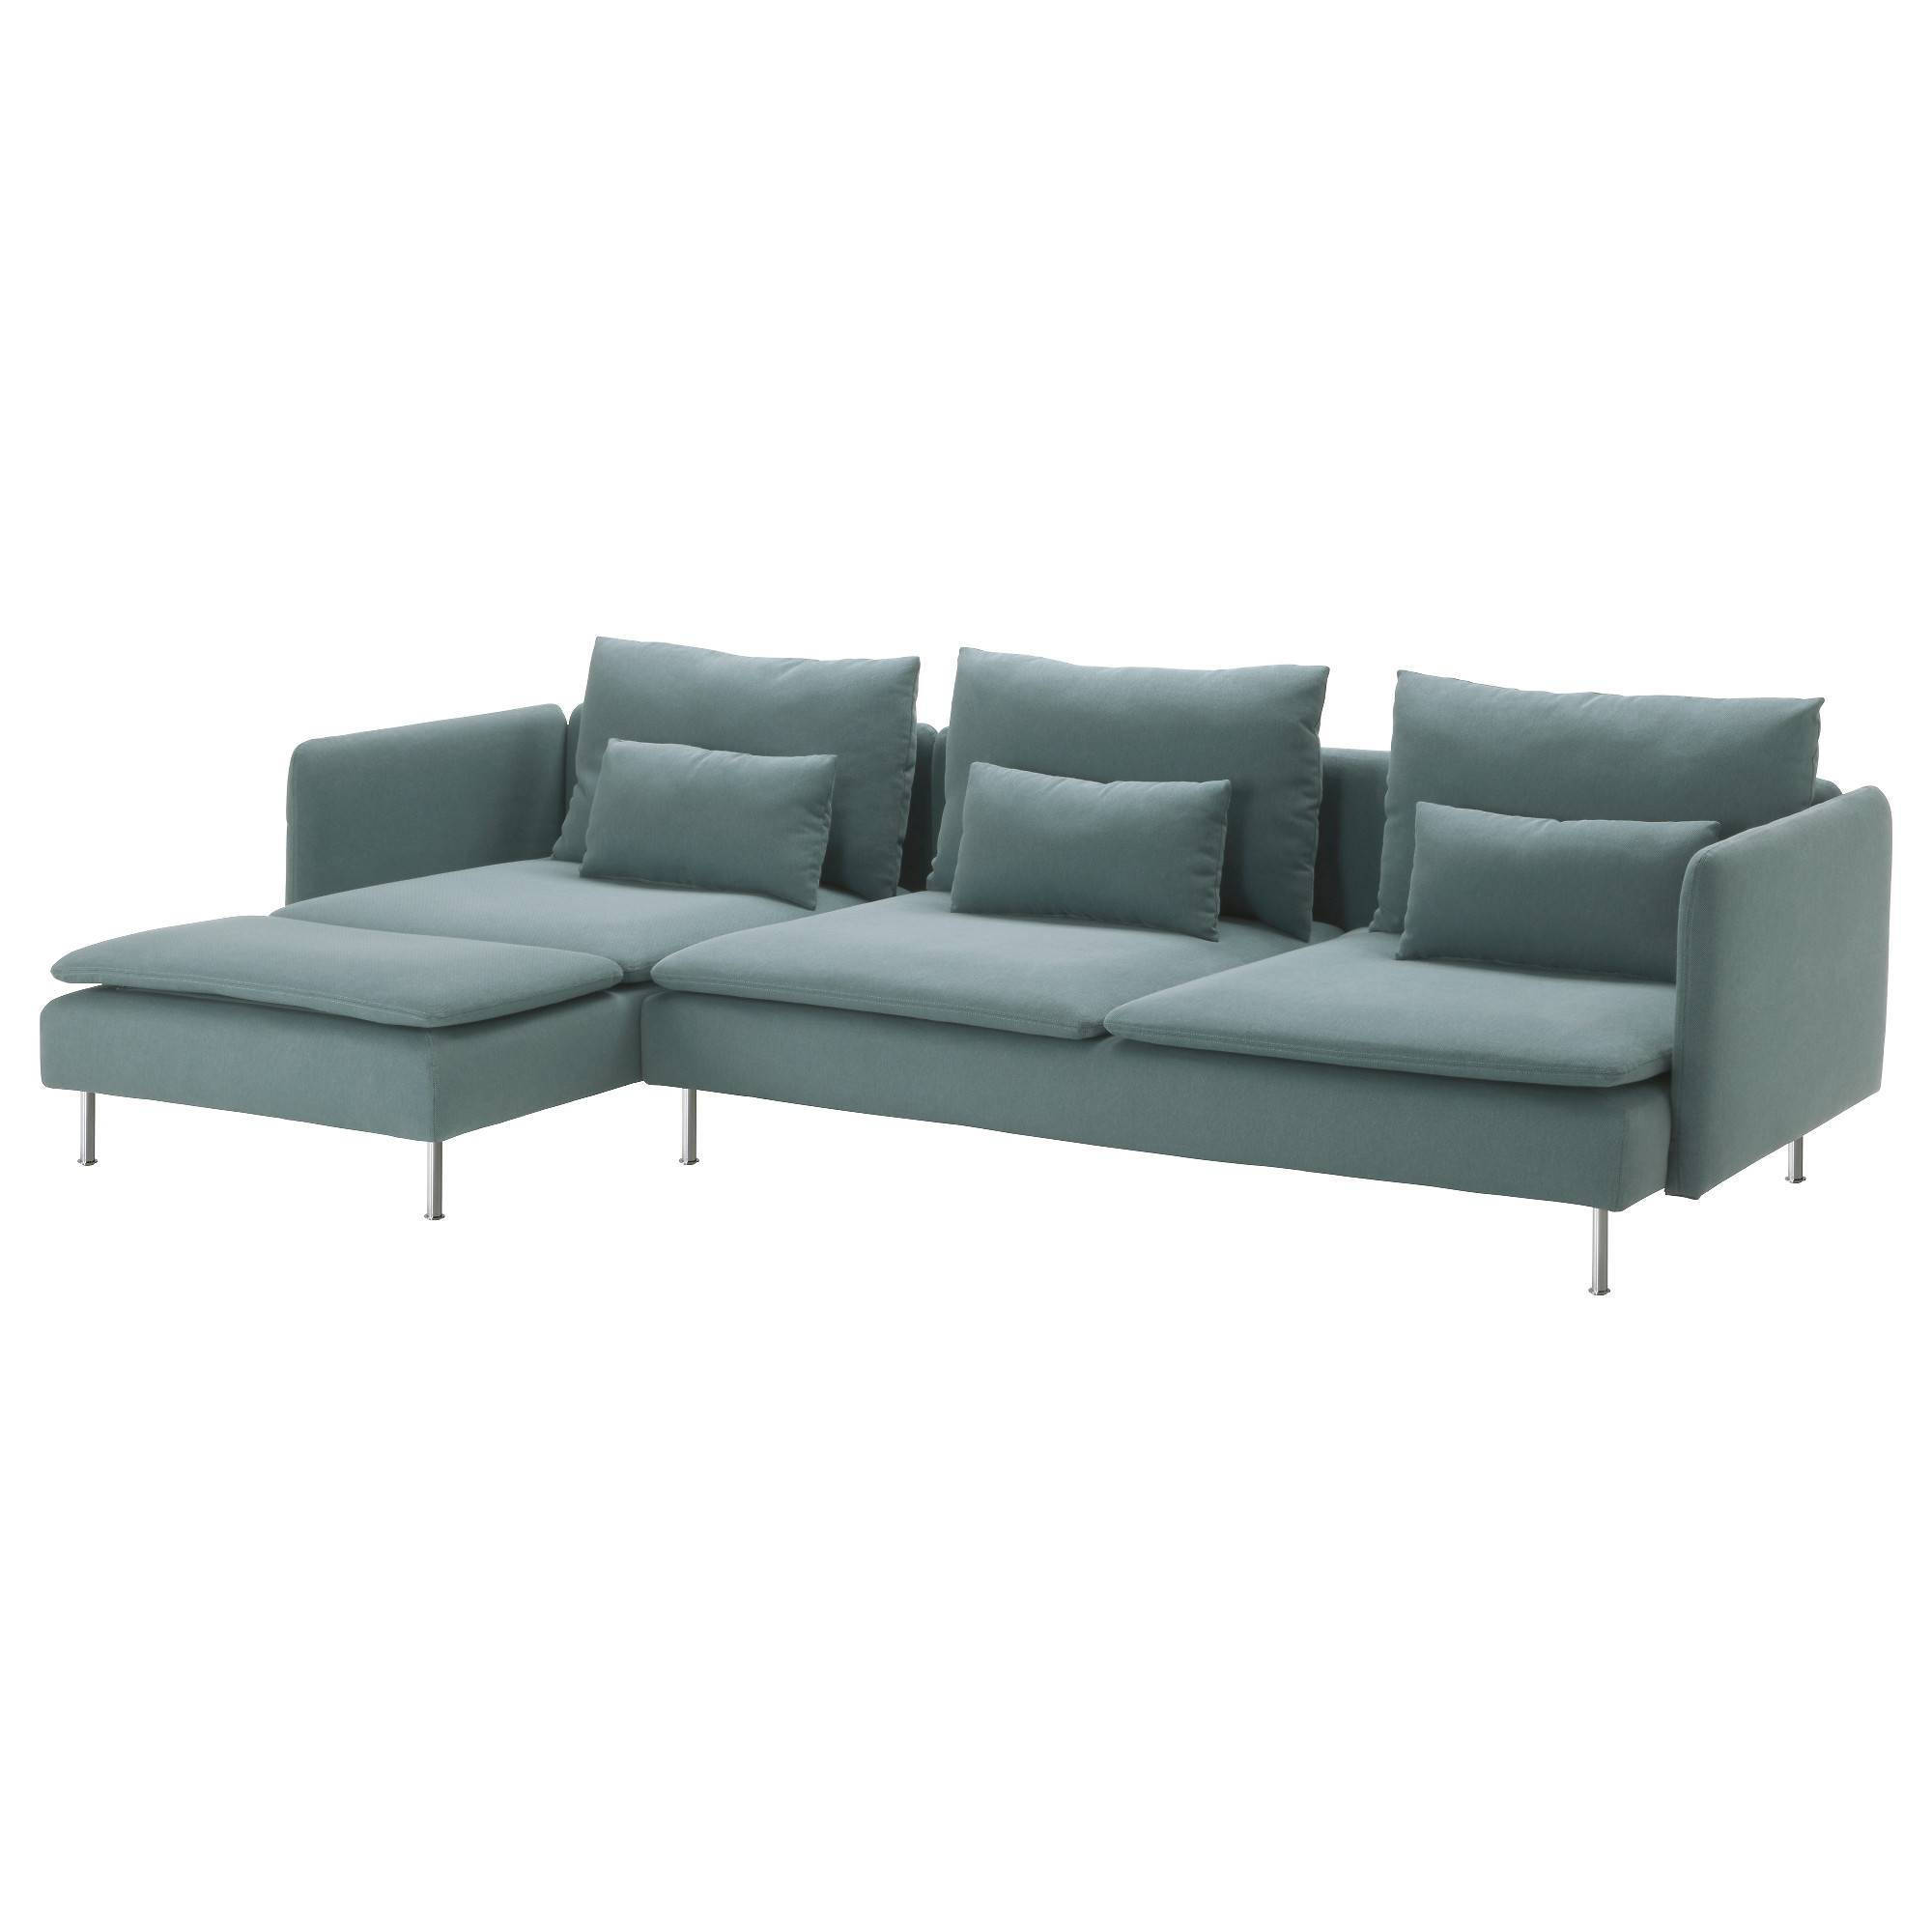 Sectional Sofas & Couches – Ikea For Ikea Sectional Sofa Sleeper (View 16 of 25)